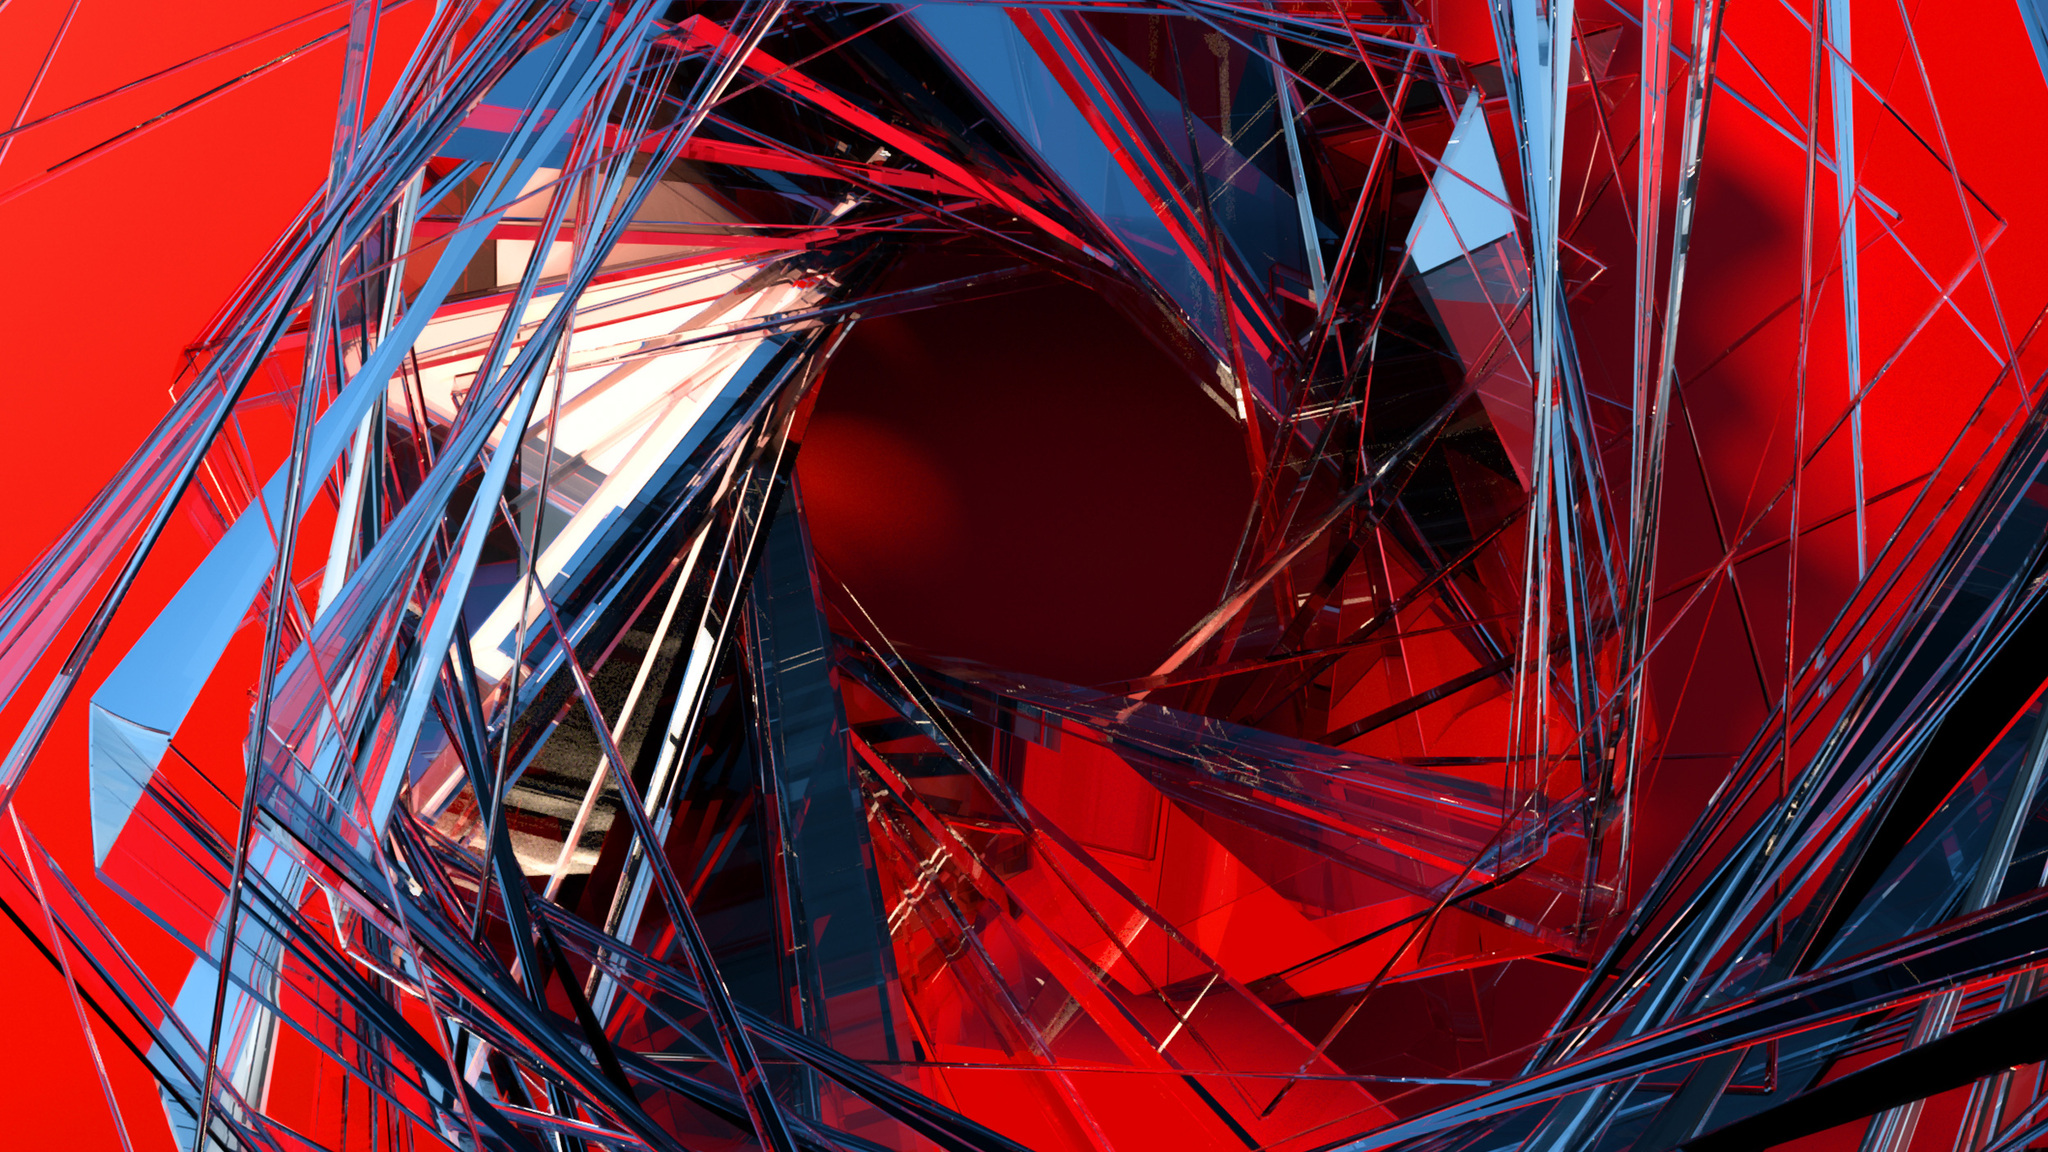 3d-glass-abstract-art-no.jpg